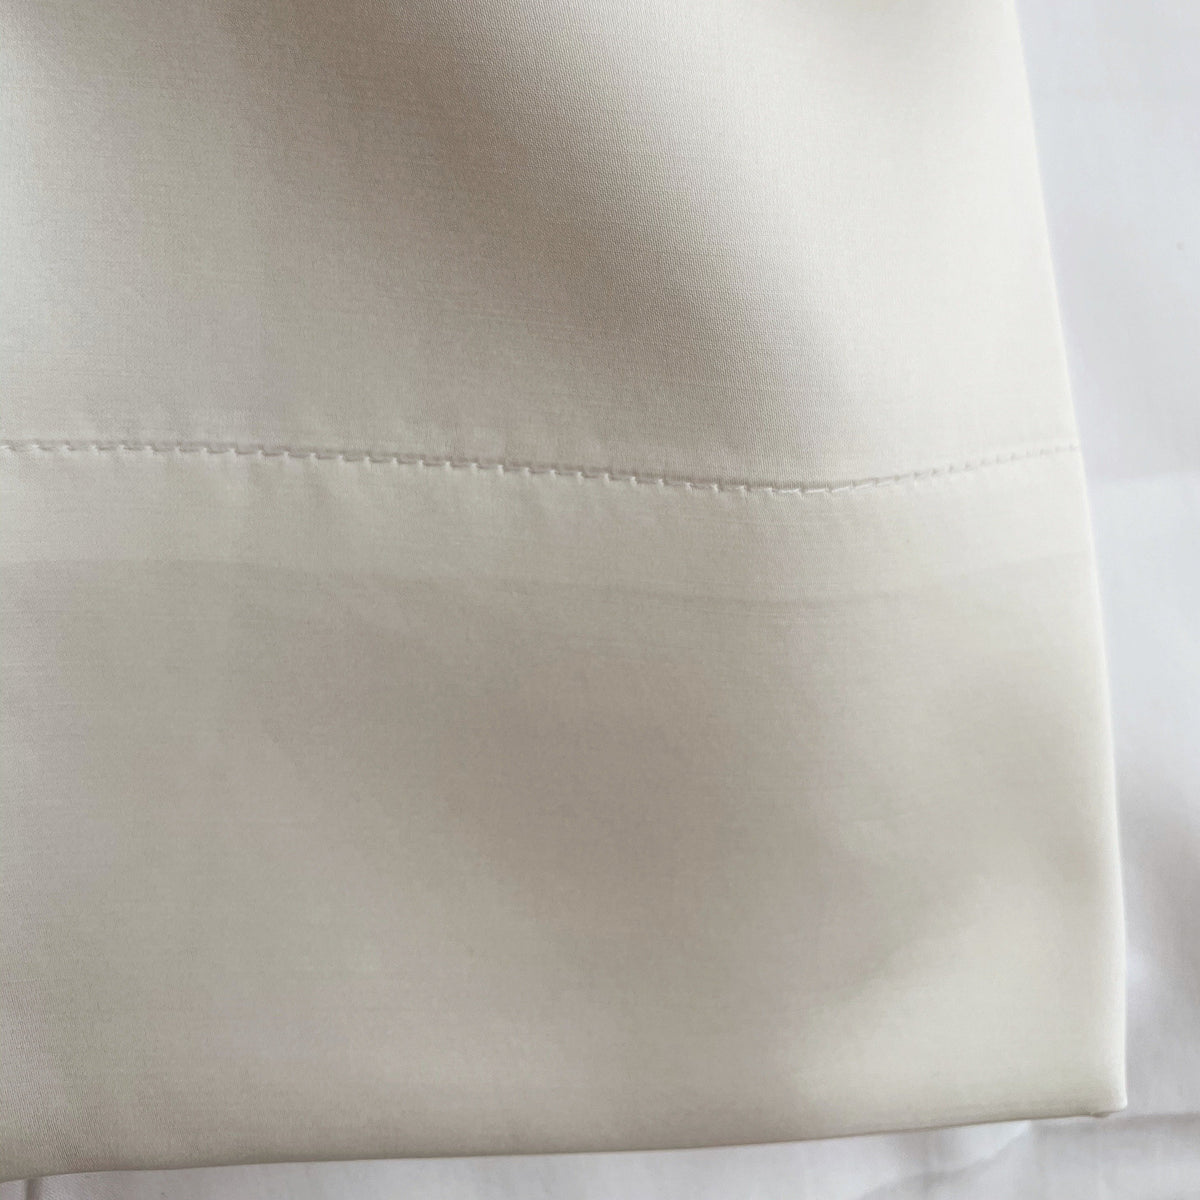 St-Geneve 'Serenity' Silk Pillow Case